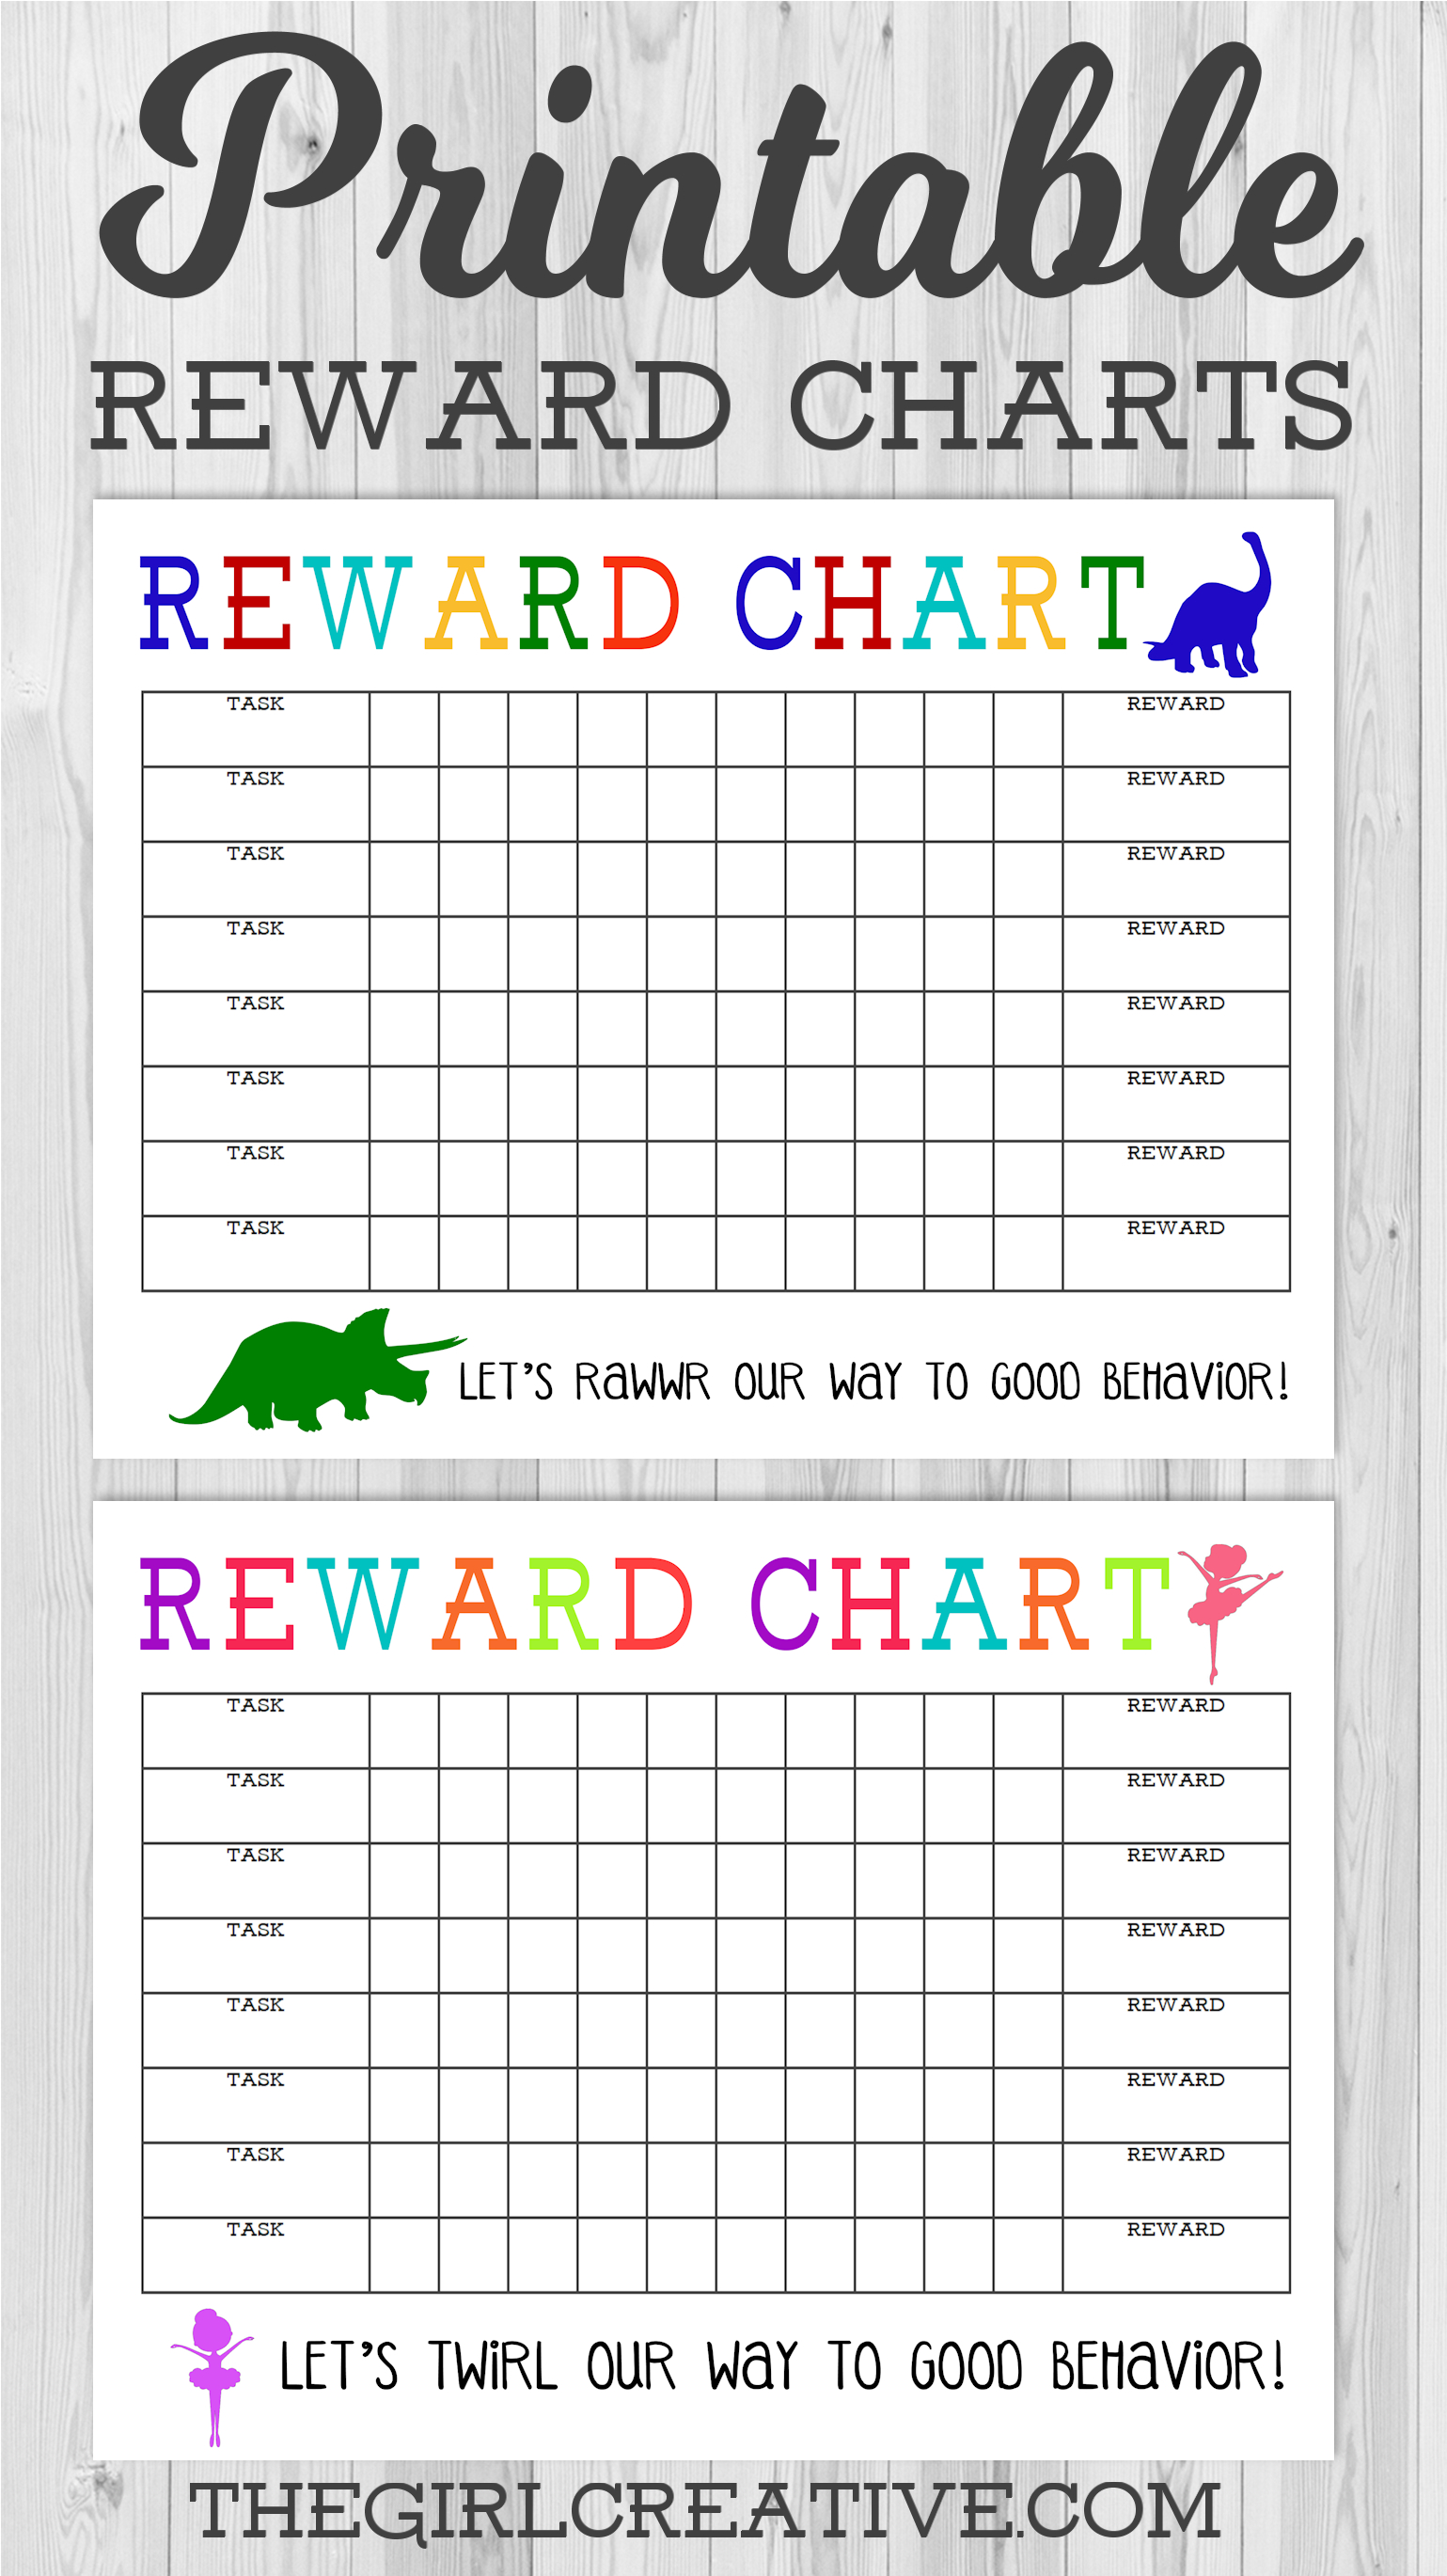 Printable Reward Chart | Share Today's Craft And Diy Ideas - Free Printable Reward Charts